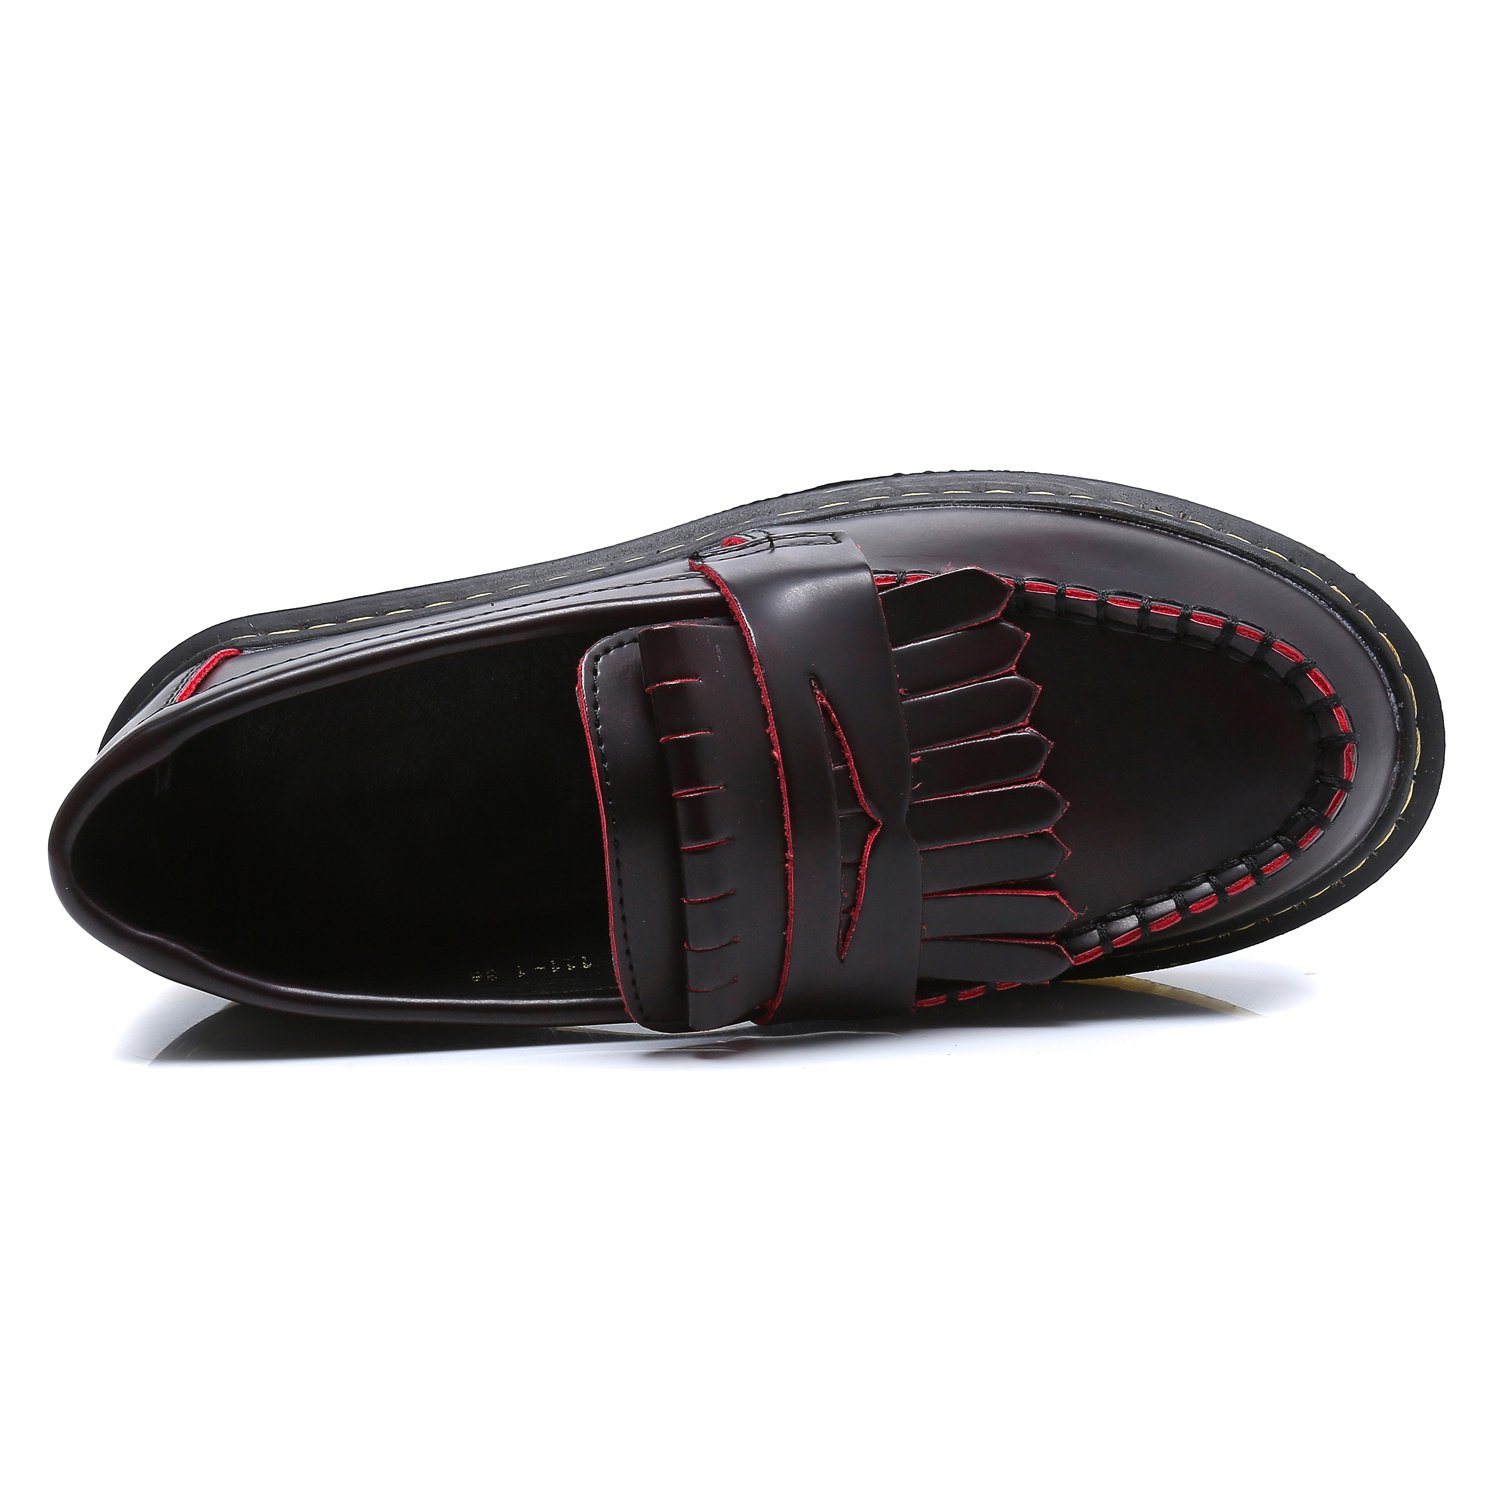 Smilun Unisex-Adult Moccasins Fashion Comfortable Smooth Leather Women Red Size 7.5 B(M) US by Smilun (Image #4)